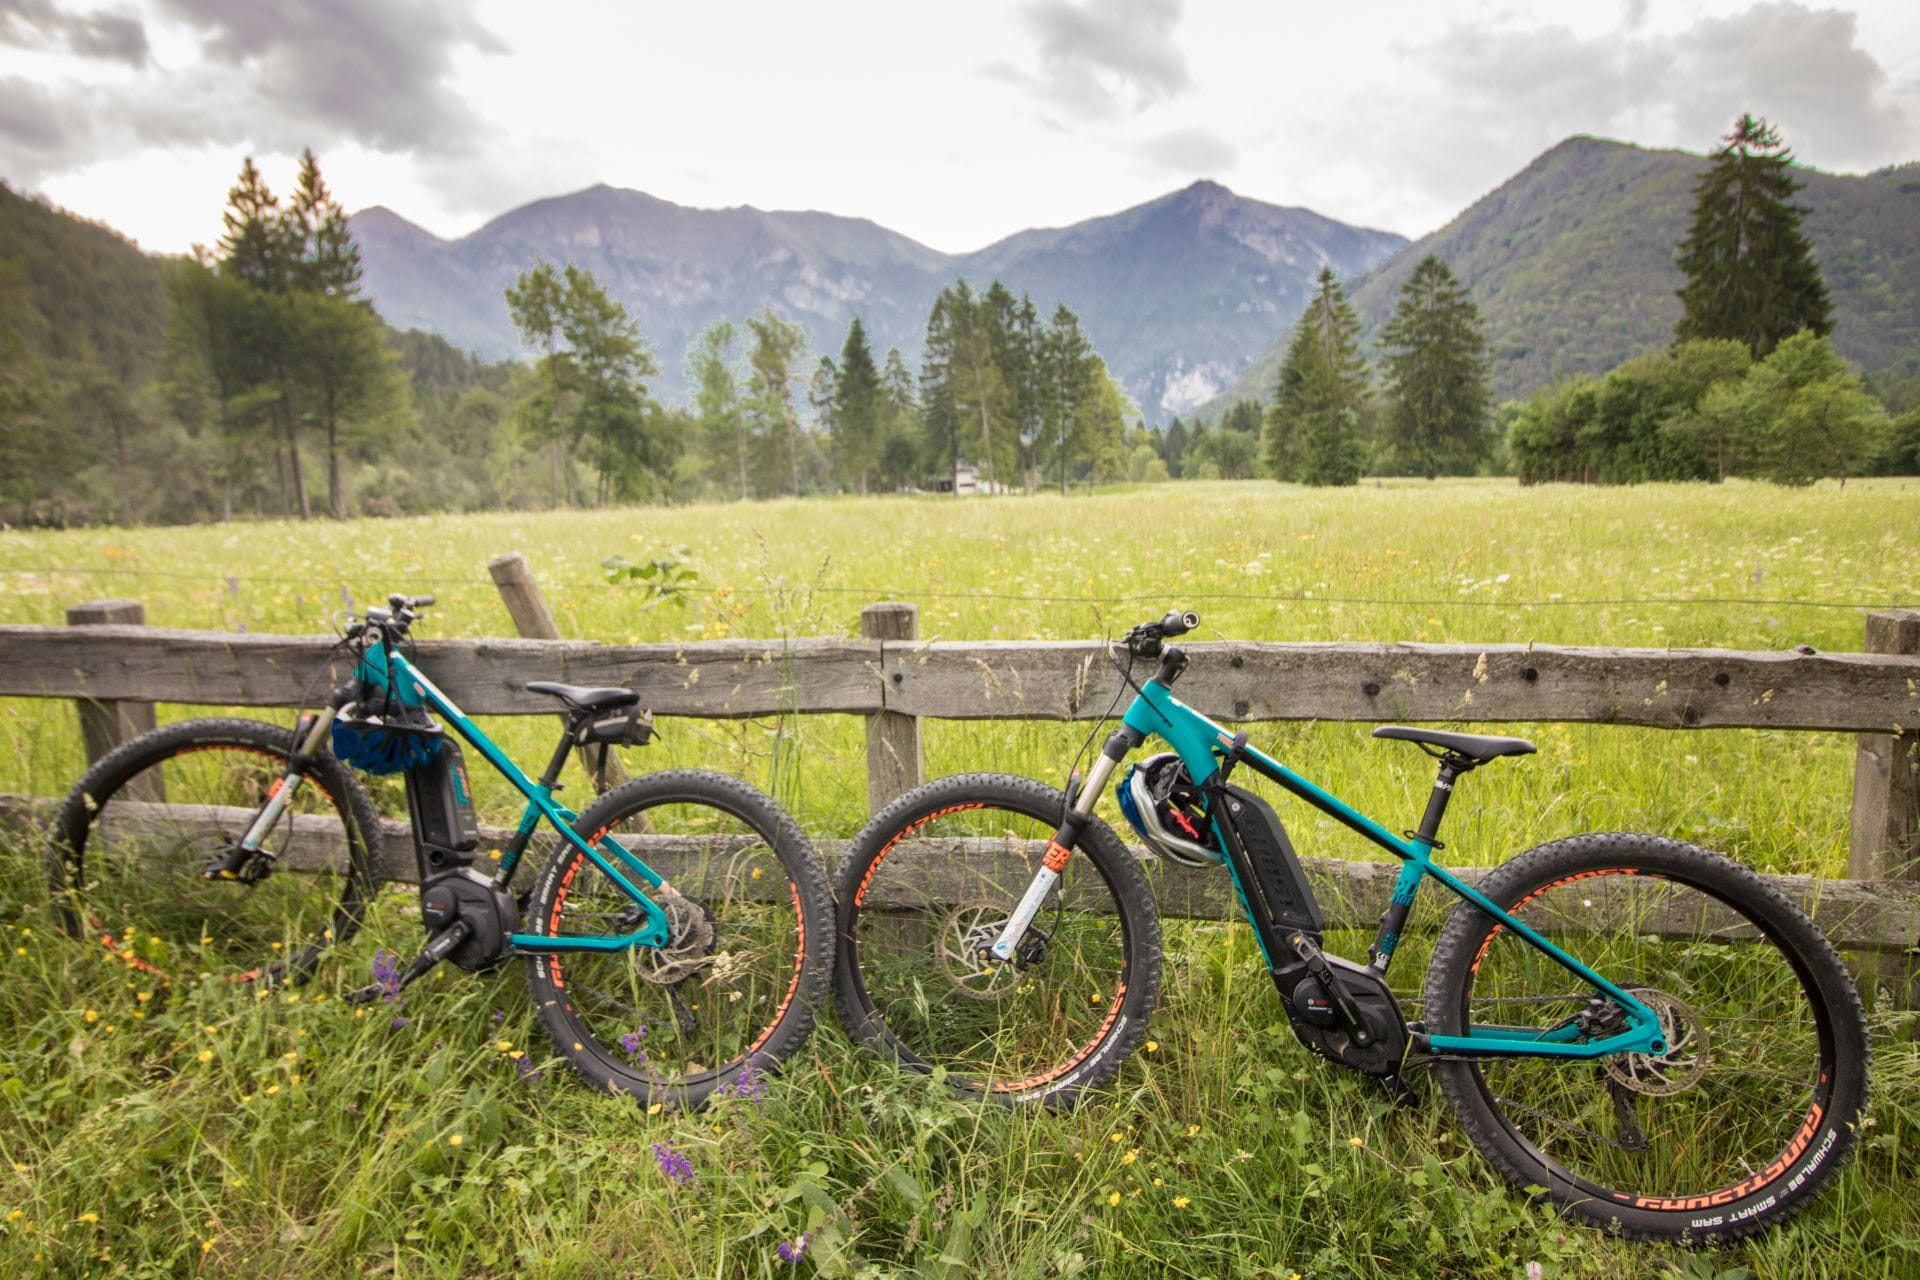 mountain-bike-ebikes-leaning-against-a-fence-in-a-field-with-mountains-in-the-background-valle-di-ledro-lago-di-ledro